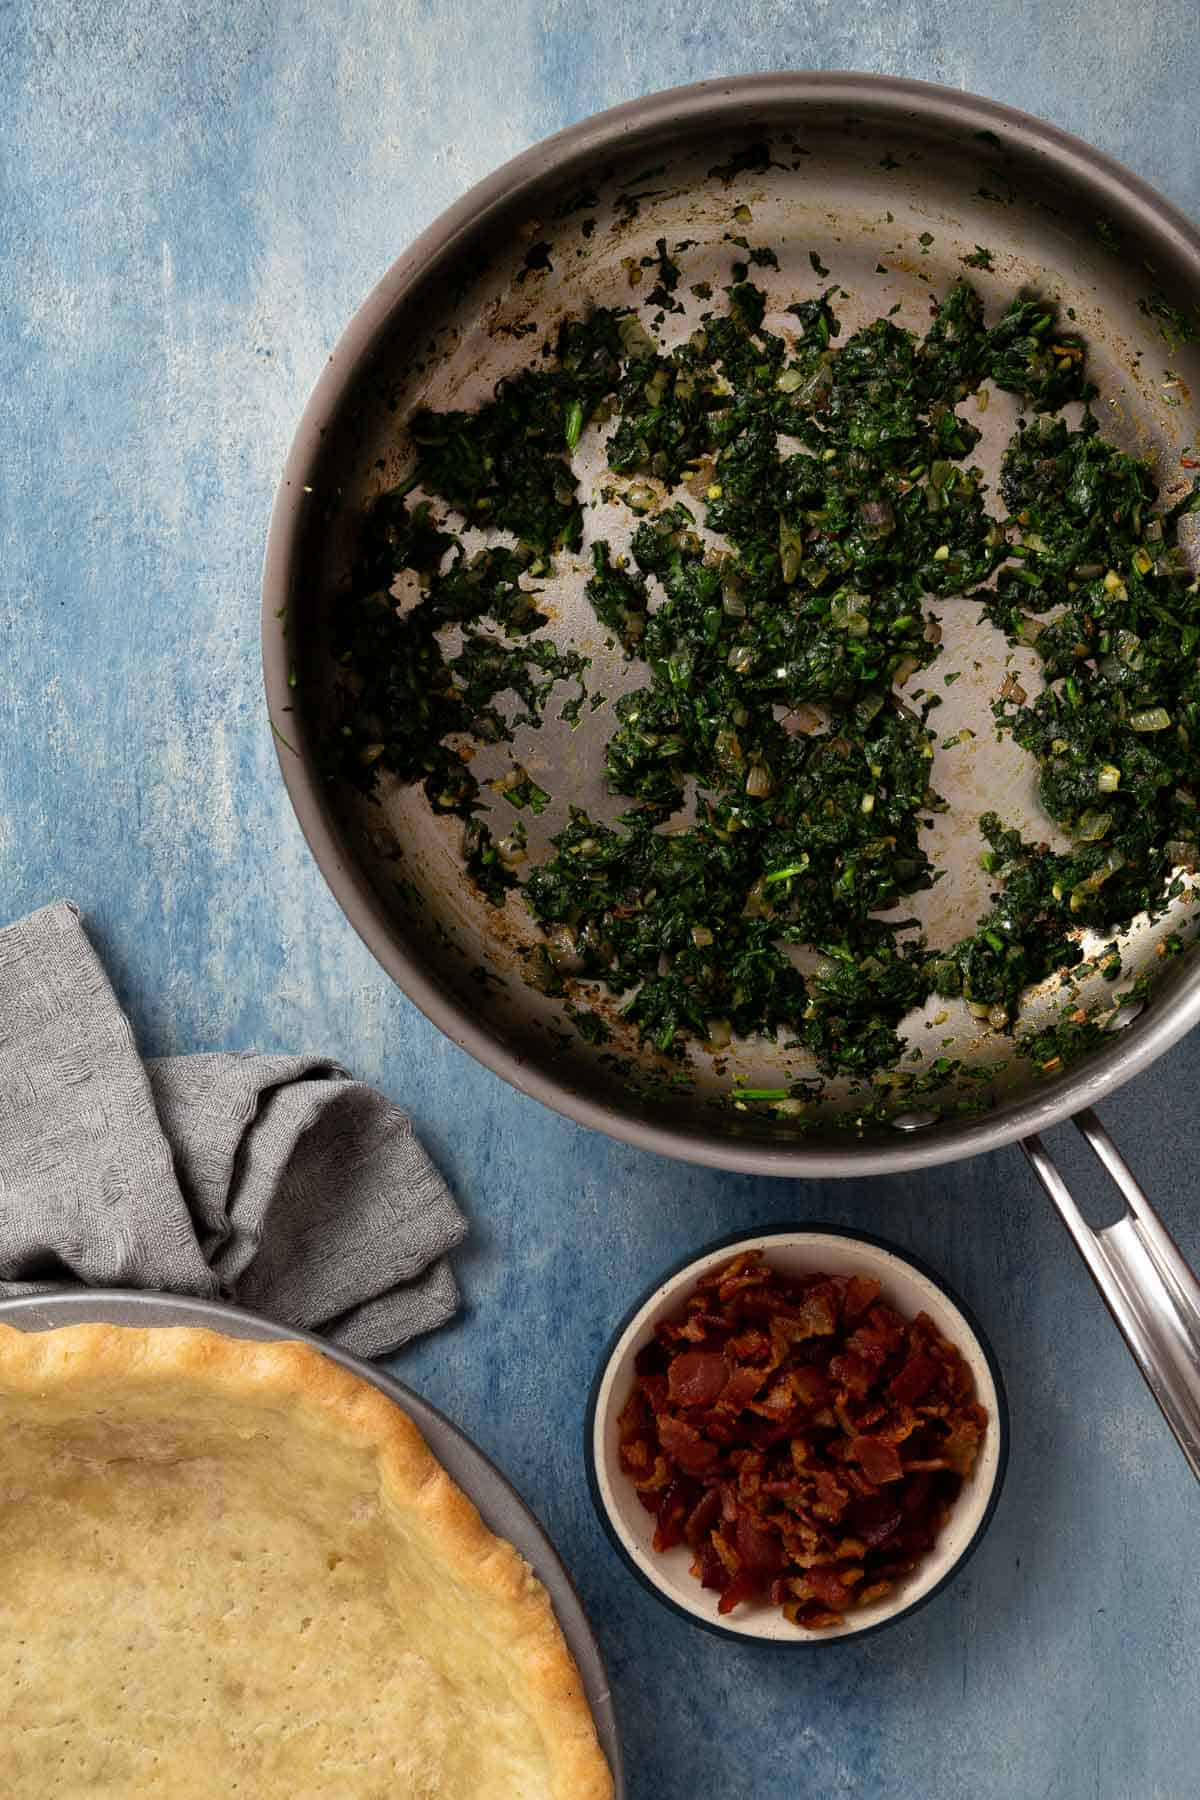 cooked spinach in a skillet next to a small bowl of cooked bacon